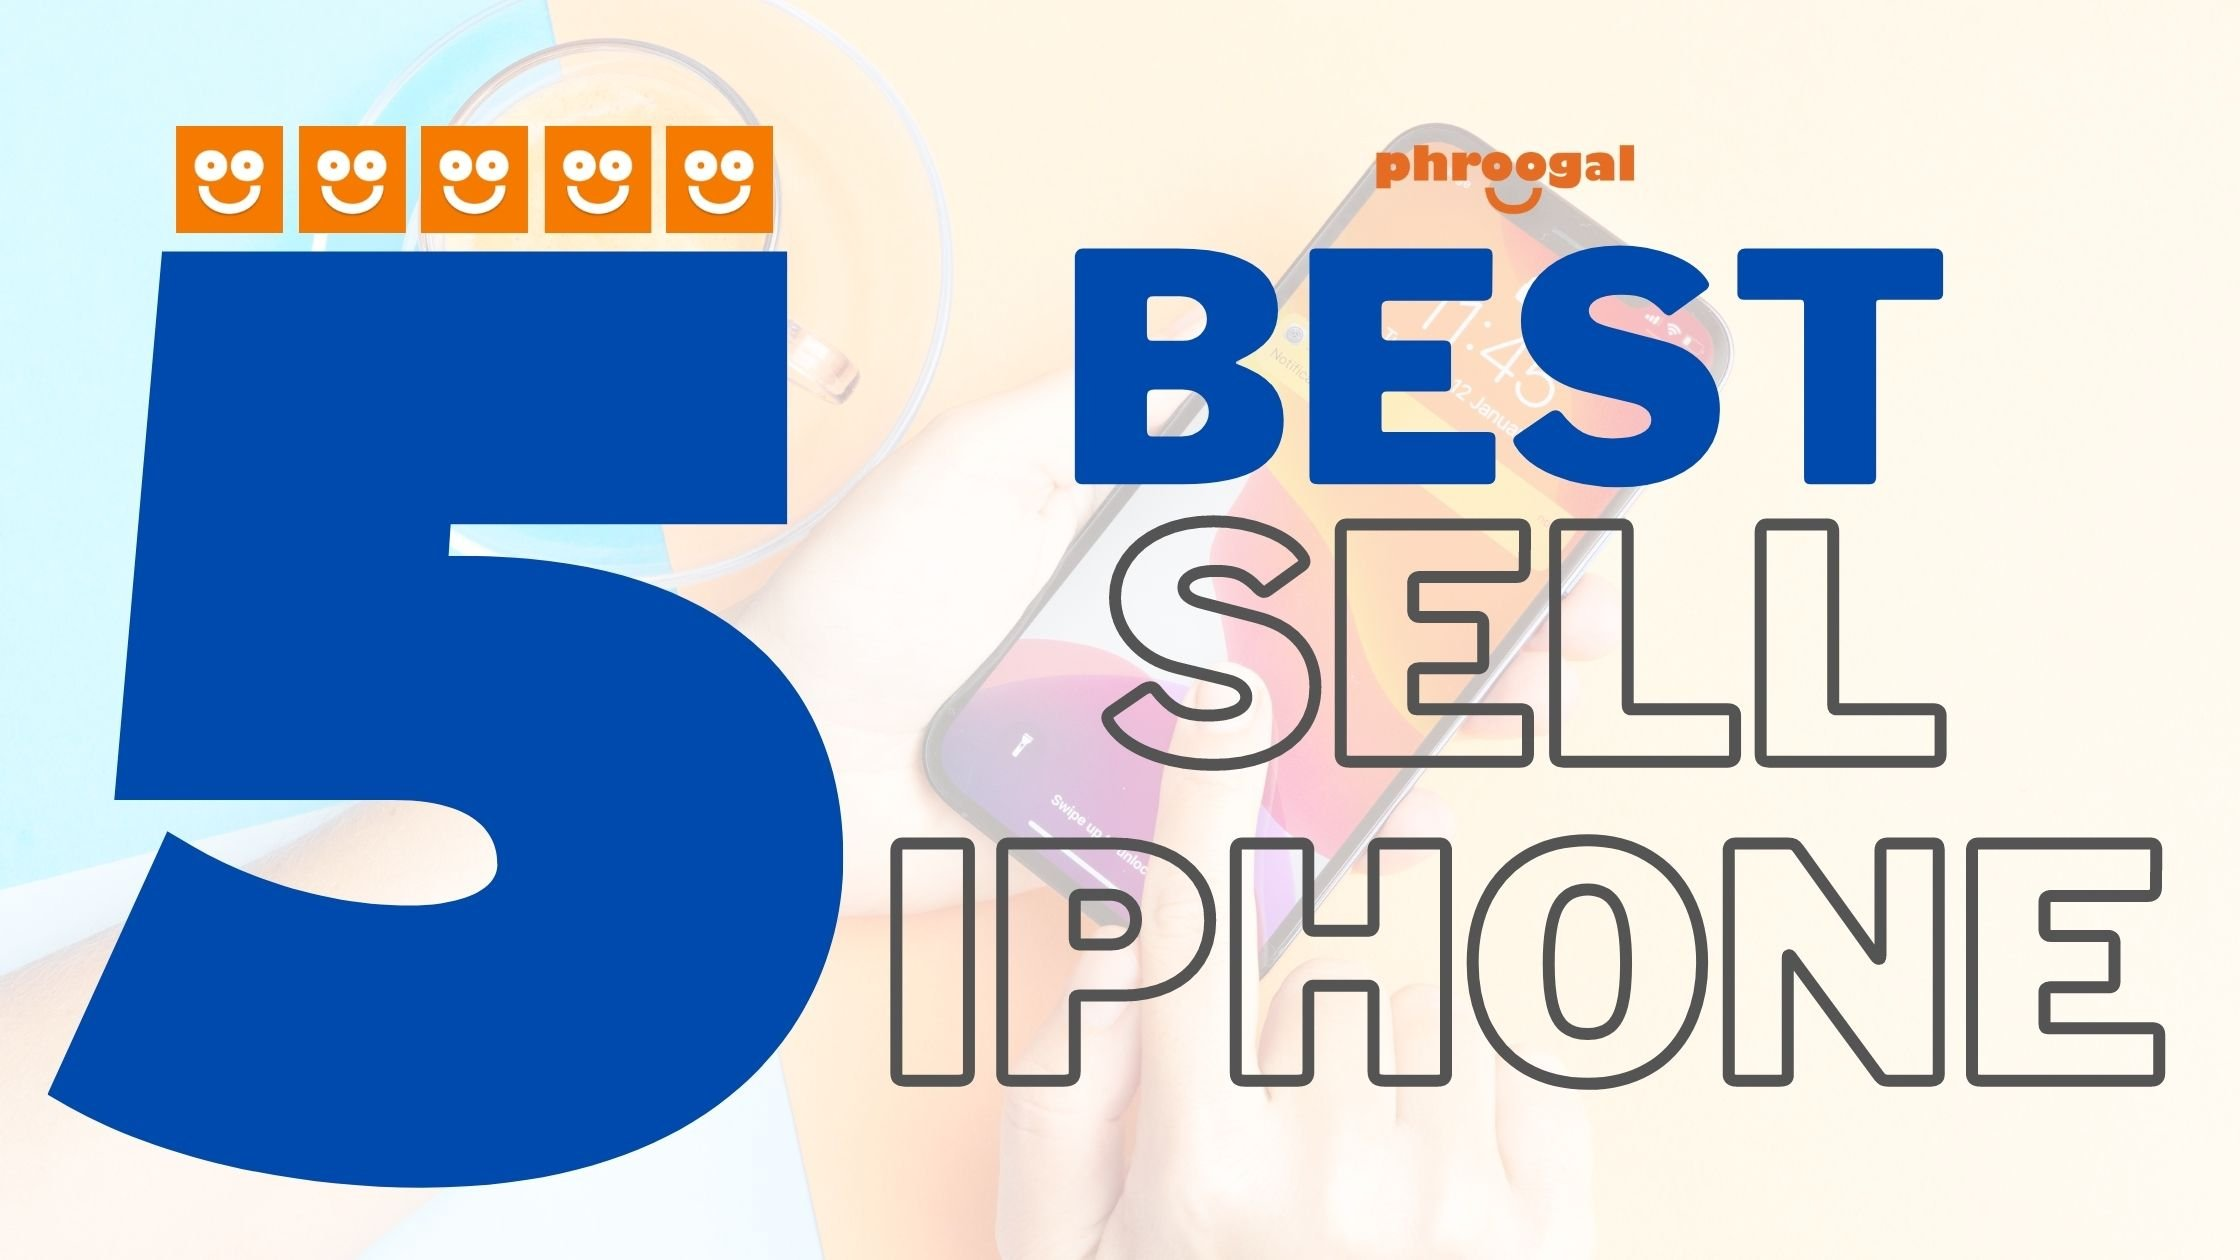 Best Places to Sell iPhone